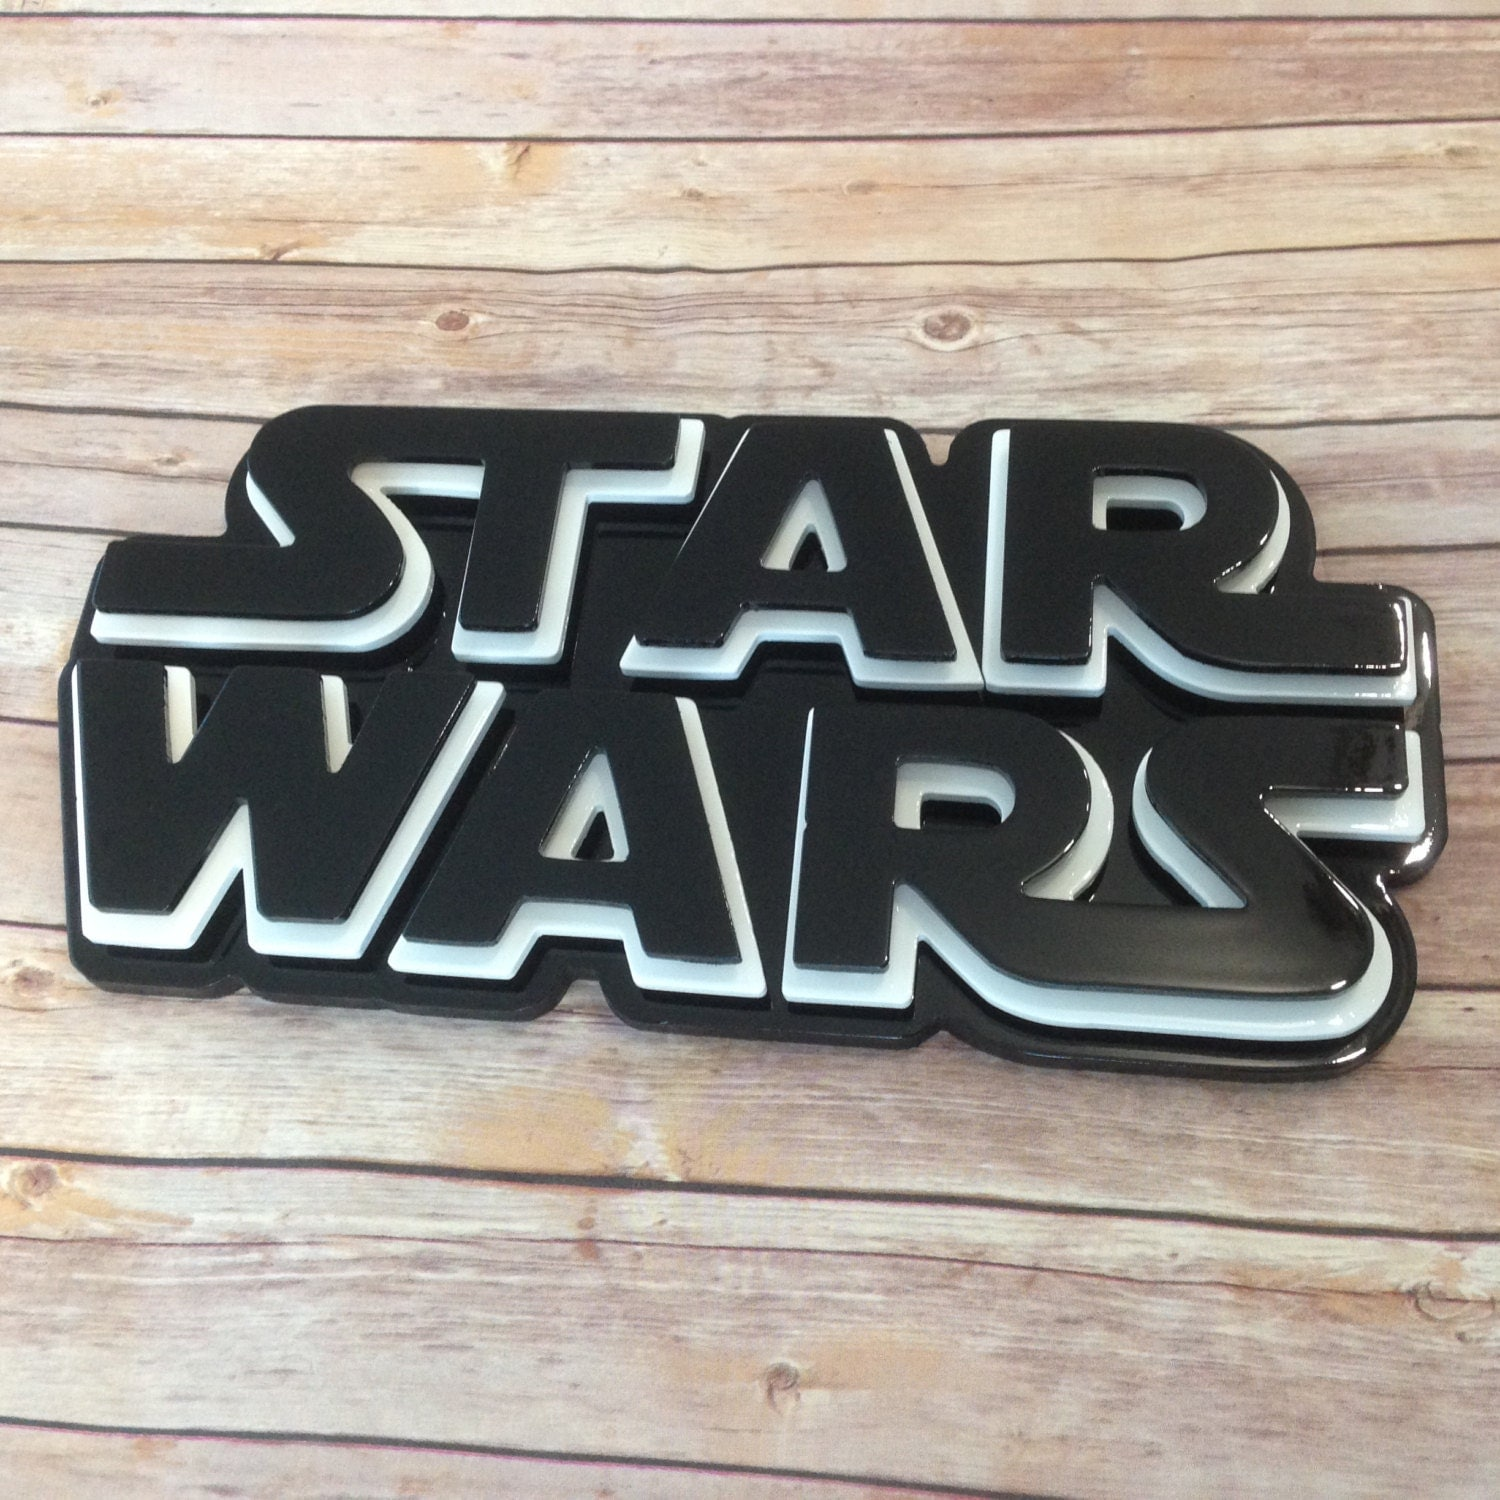 Star Wars 3d Sign. Best Paint Job For Cars Jeep Dealers St Louis. Veins Varicose Treatment Gold Bullion Dealers. Arcadia Family Dentistry Jp Morgan Bond Funds. App Management Service Urgent Care Providence. Carolina Forest Dentistry The Cloud Computing. Malpractice Lawyers In Md Advair Vs Singulair. Do I Need Liability Insurance. Colleges And University Housing Mortgage Rate